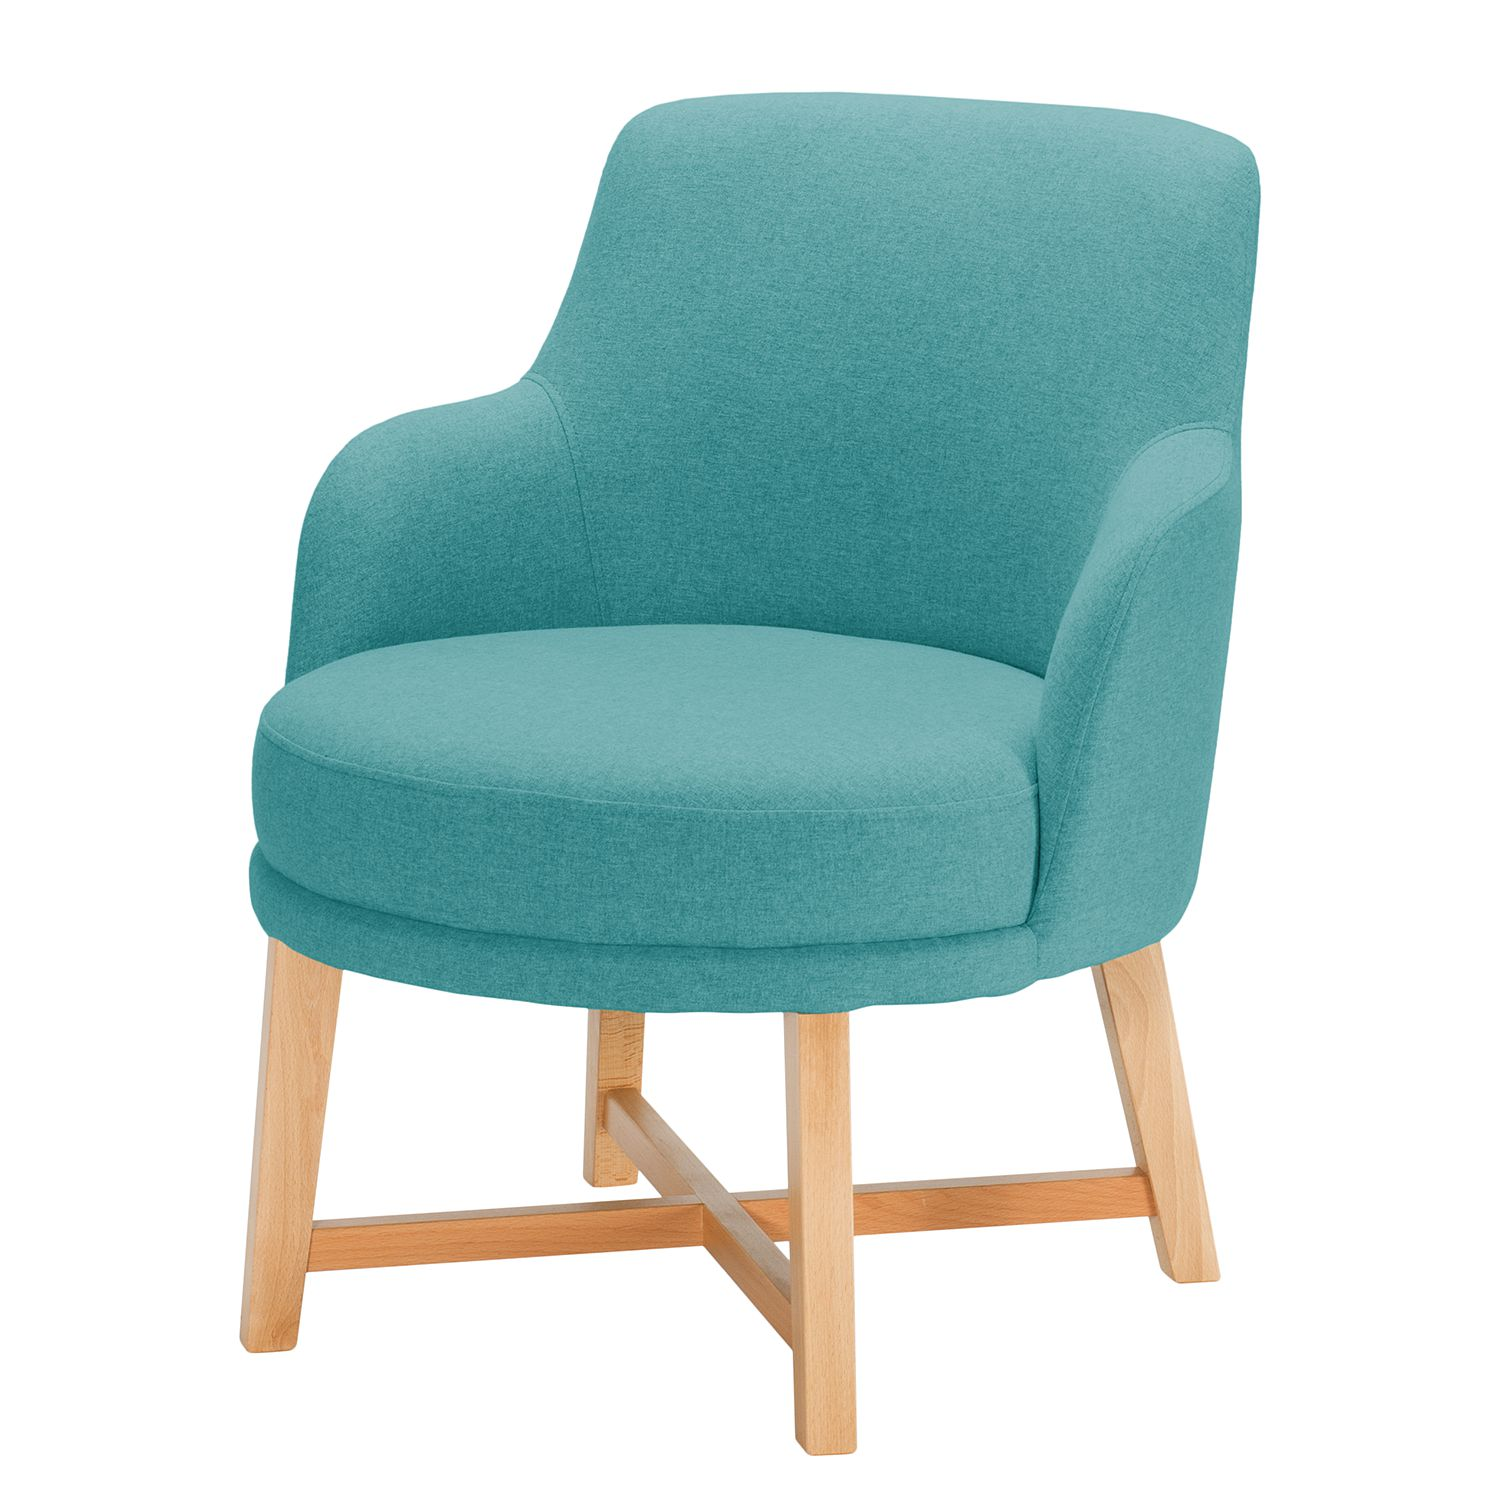 Fauteuil Siabu - Feutre - Turquoise, Morteens